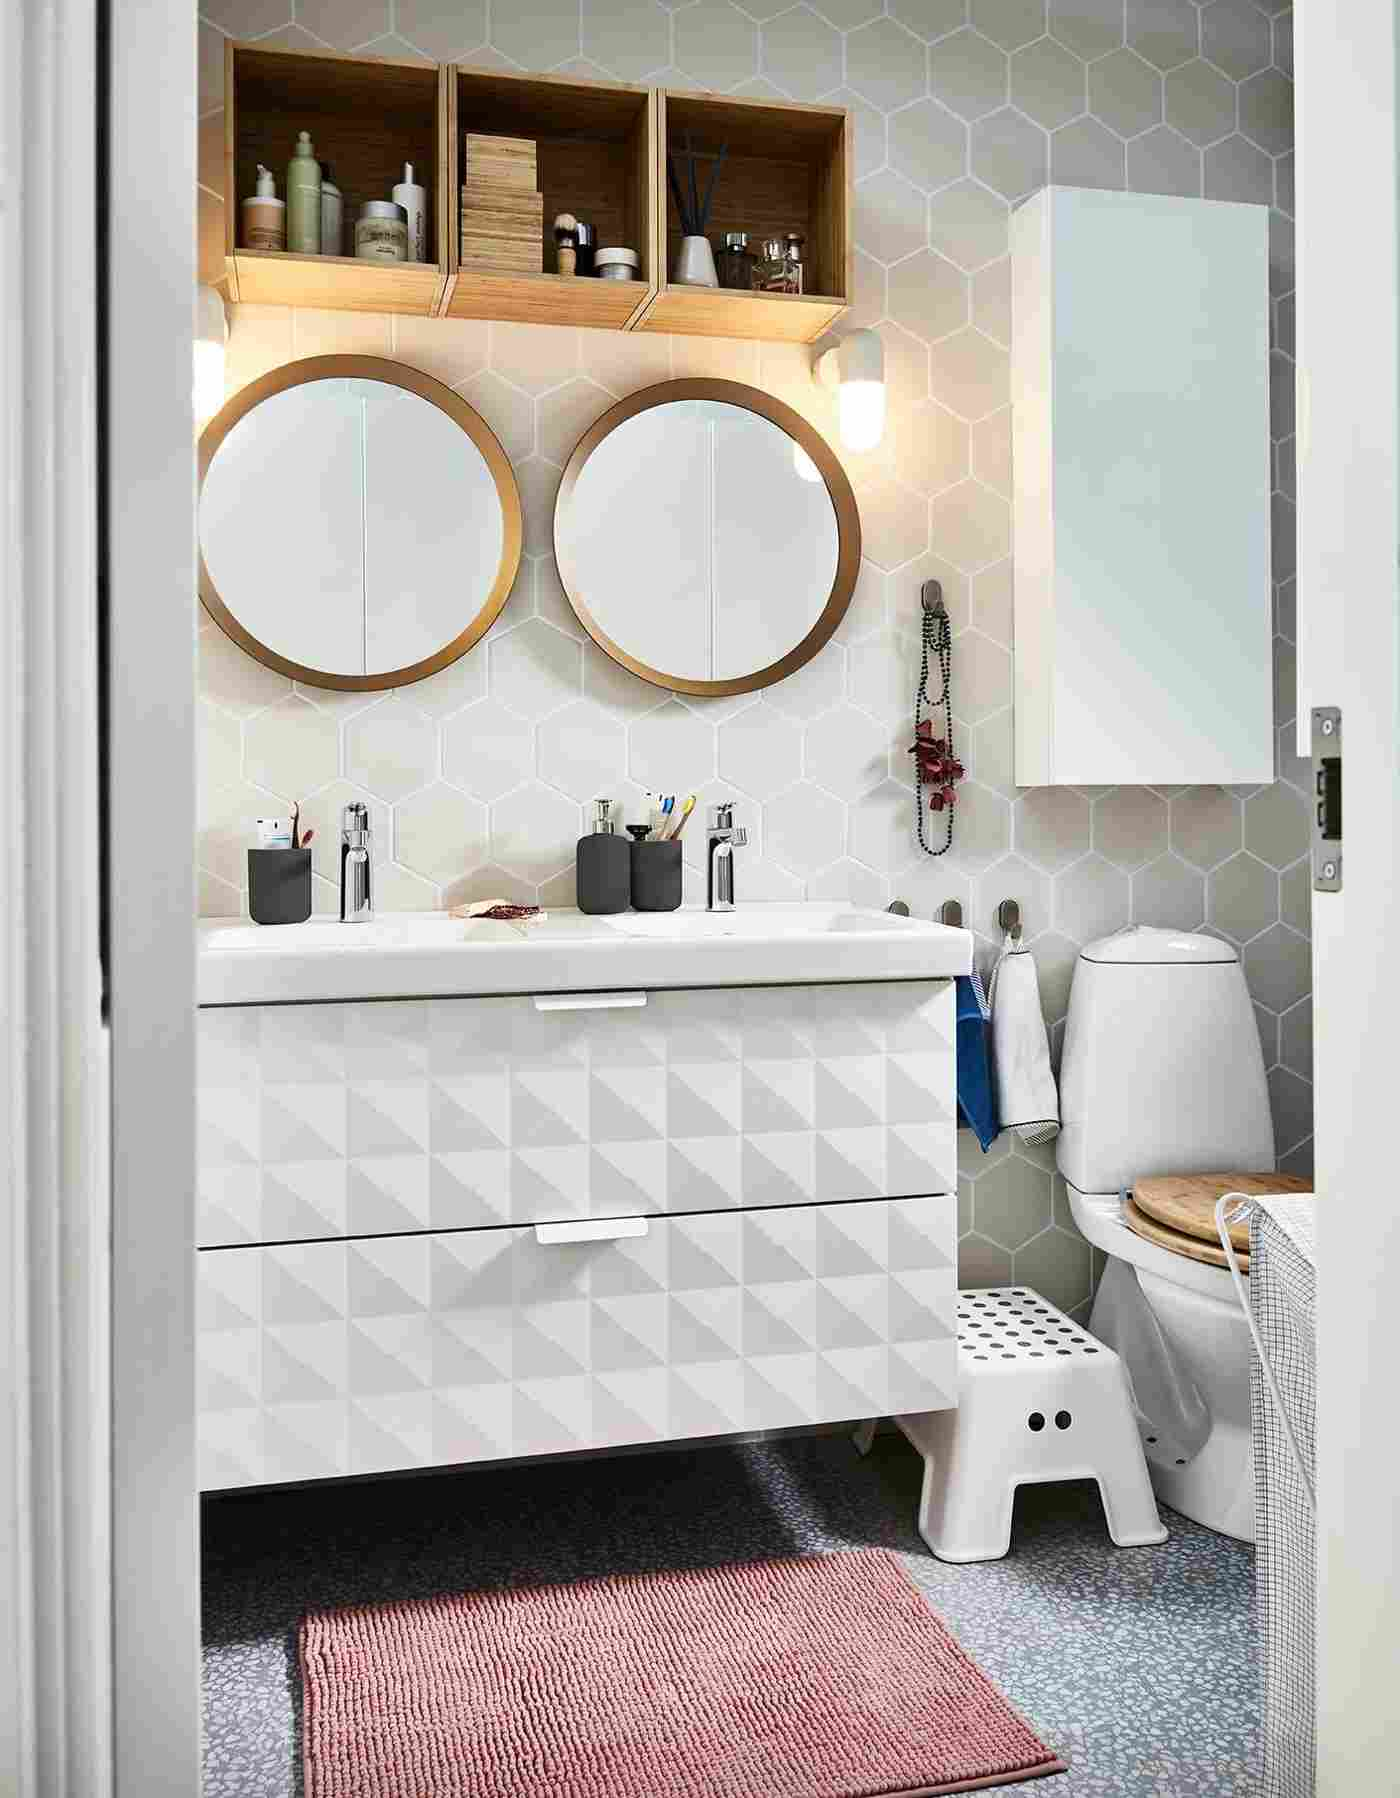 Ikea Bathroom Ideas For Small Spaces 12 Functional And Inspiring Bathroom Designs From The New Catalog 2020 Decor Object Your Daily Dose Of Best Home Decorating Ideas Interior Design Inspiration